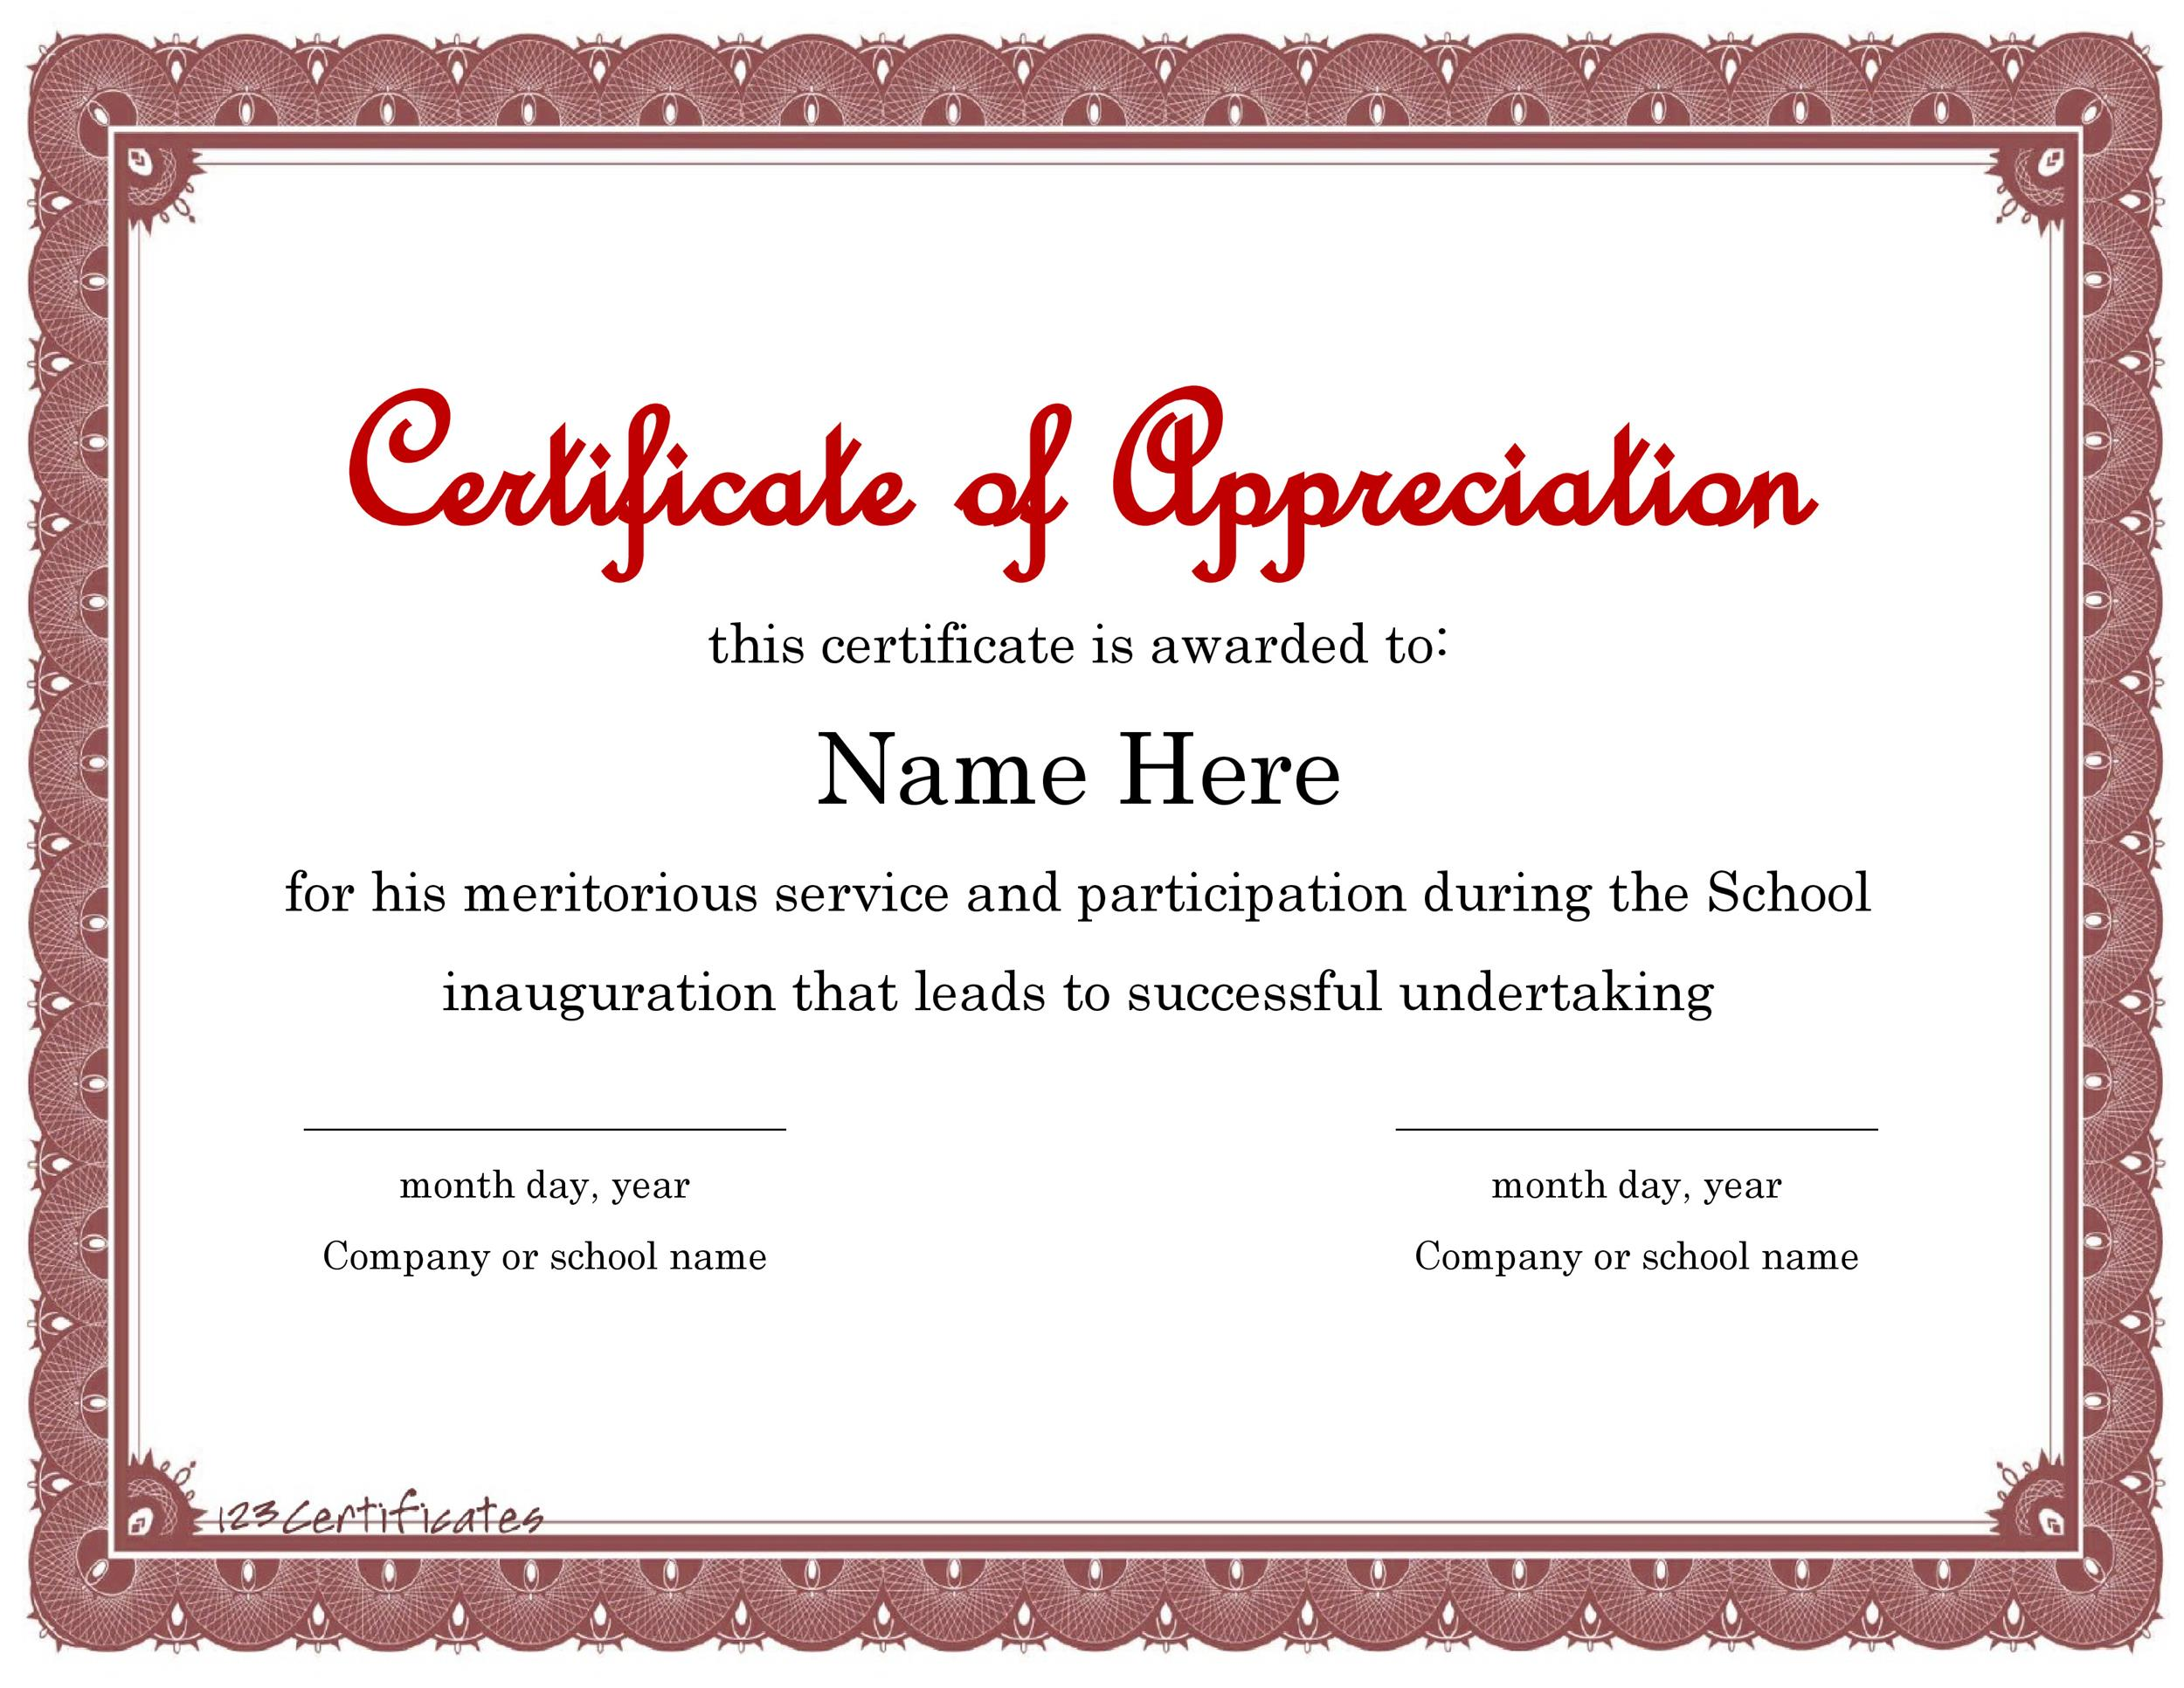 30 free certificate of appreciation templates and letters printable certificate of appreciation 01 yelopaper Choice Image